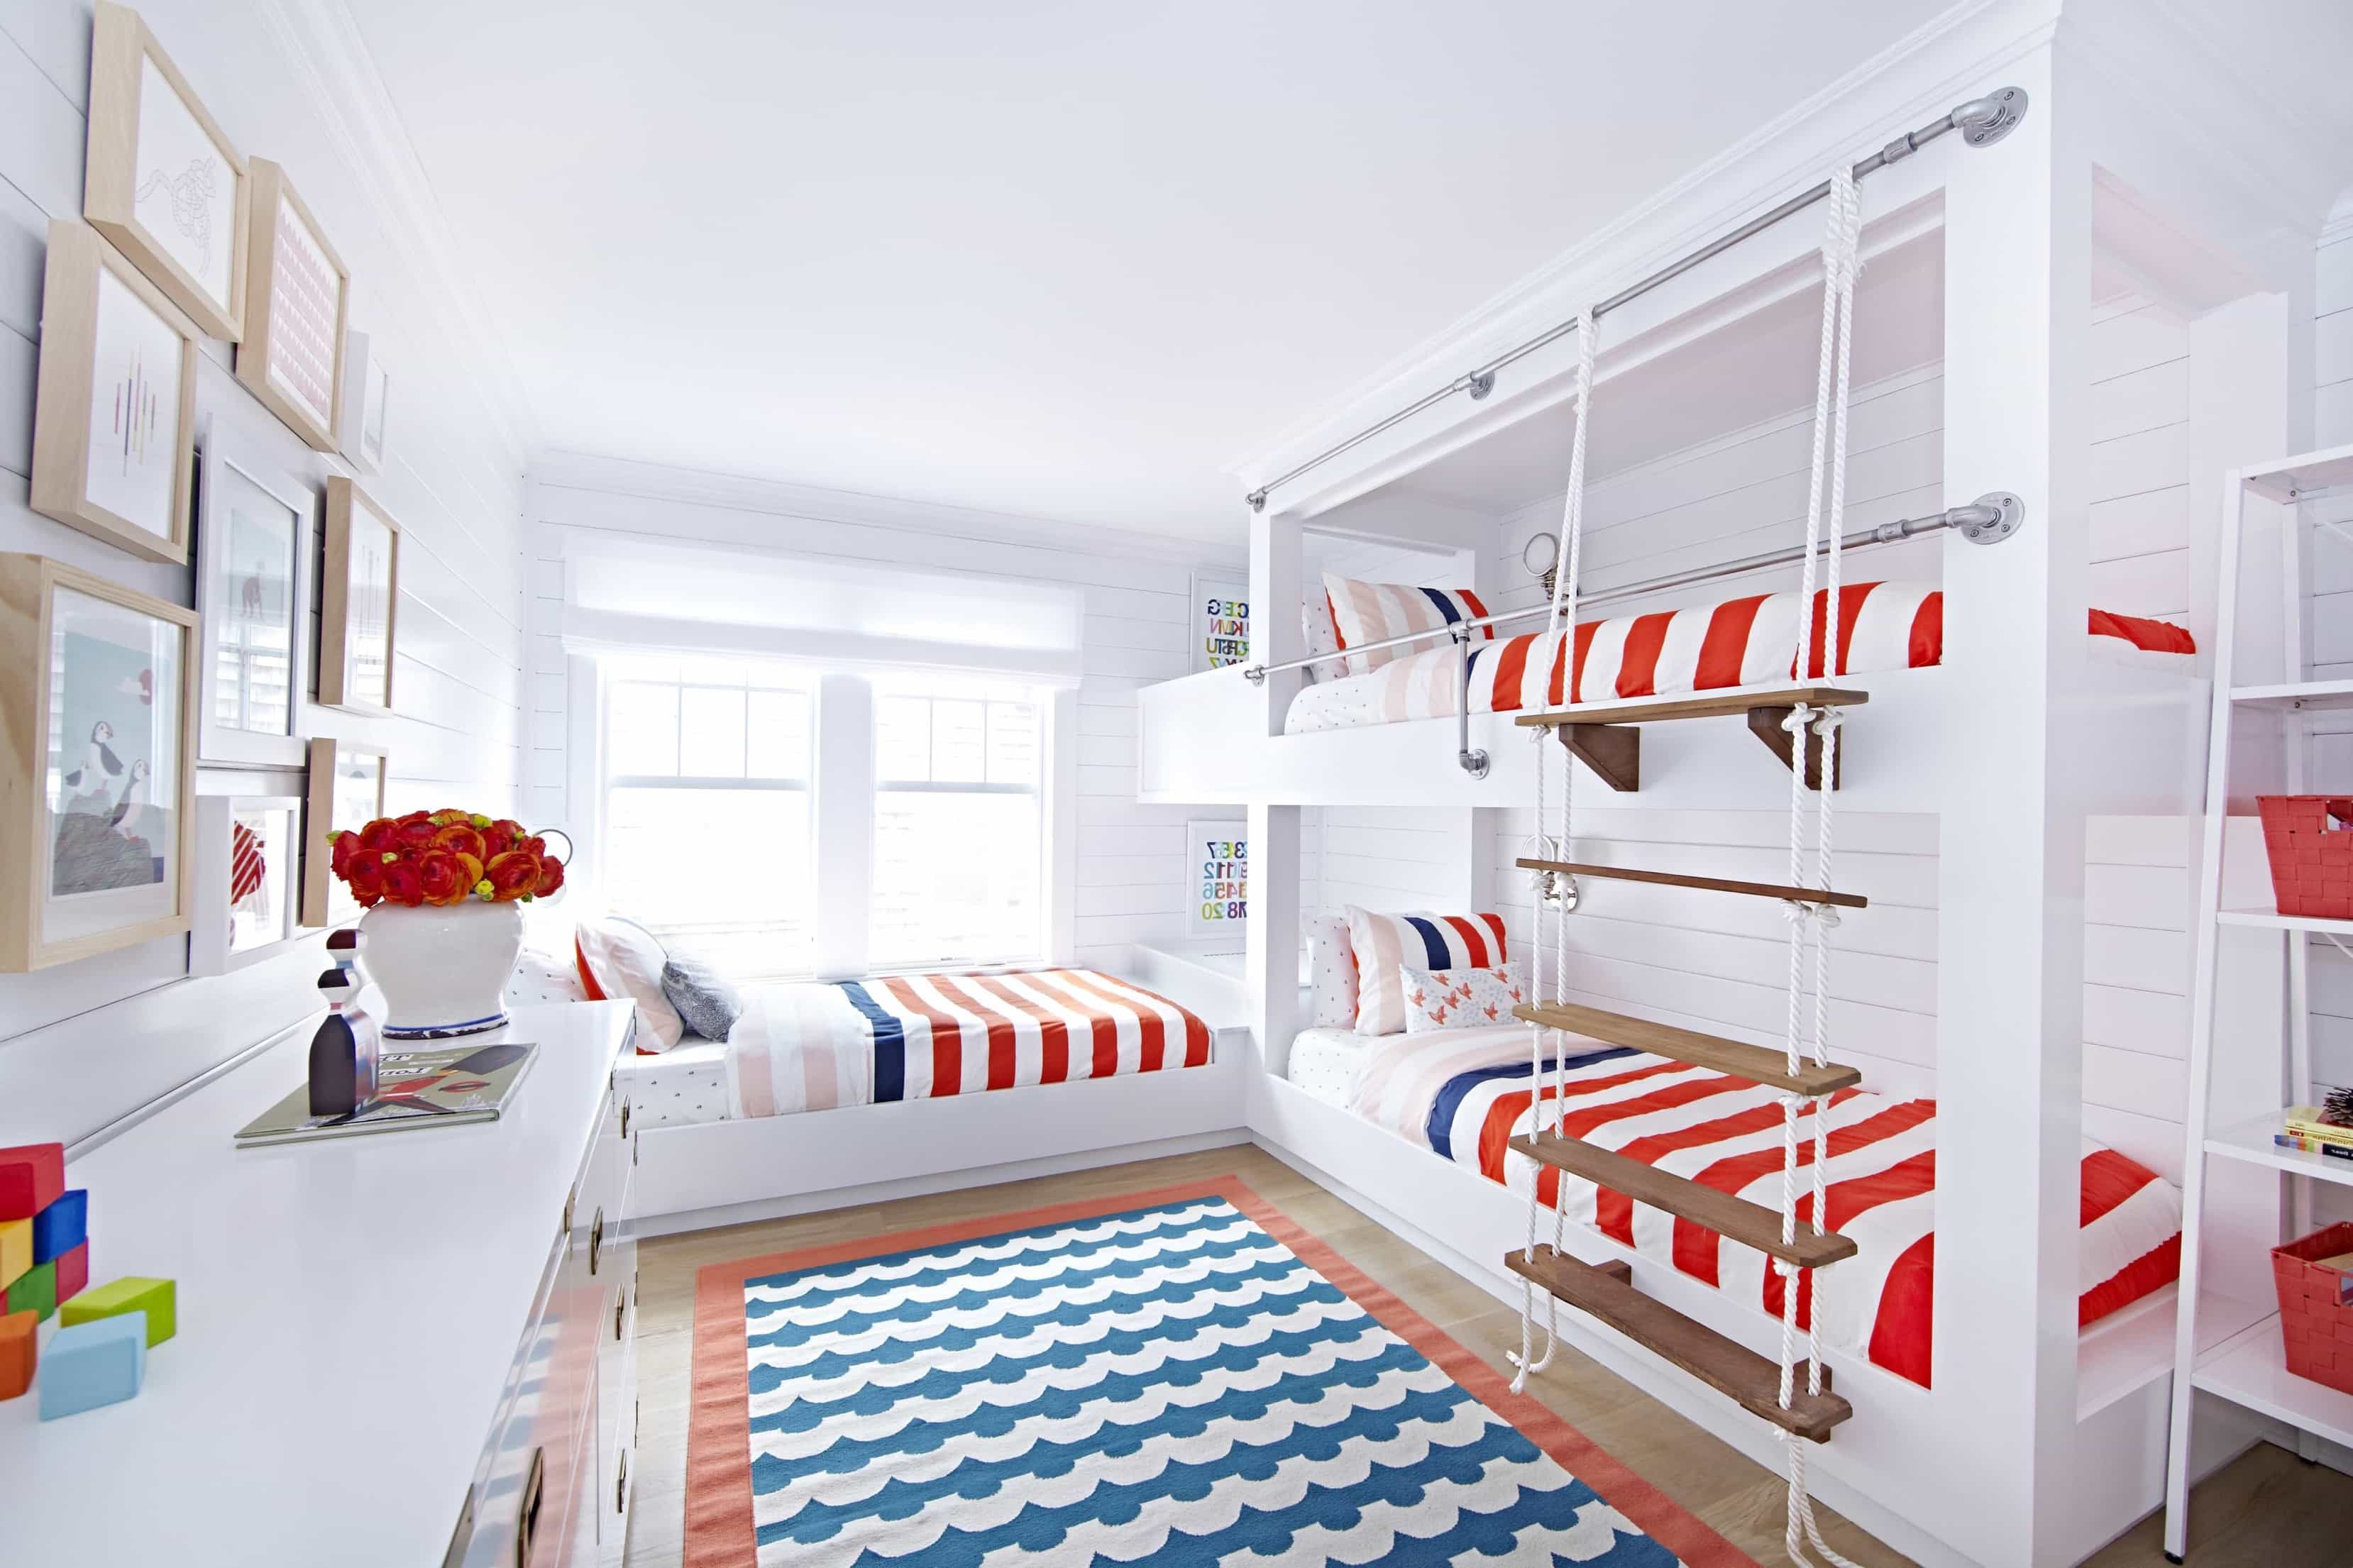 Featured Image of Kids Bunk Room With Patriotic Color Theme